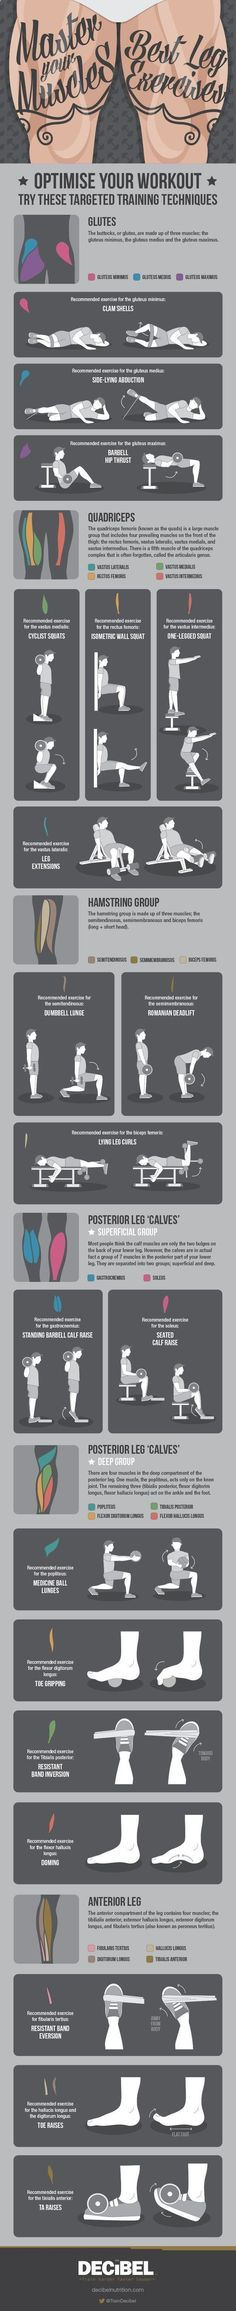 Six-pack abs, gain muscle or weight loss, these workout plan is great for beginners men and women. Best Leg Workout, Glutes Workout Men, Leg Lifting Workout, Muscular Legs Workout, Big Thigh Workout, Best Arm Workouts, Arm Muscles Workout, Free Weight Leg Workout, Beginner Workout For Men